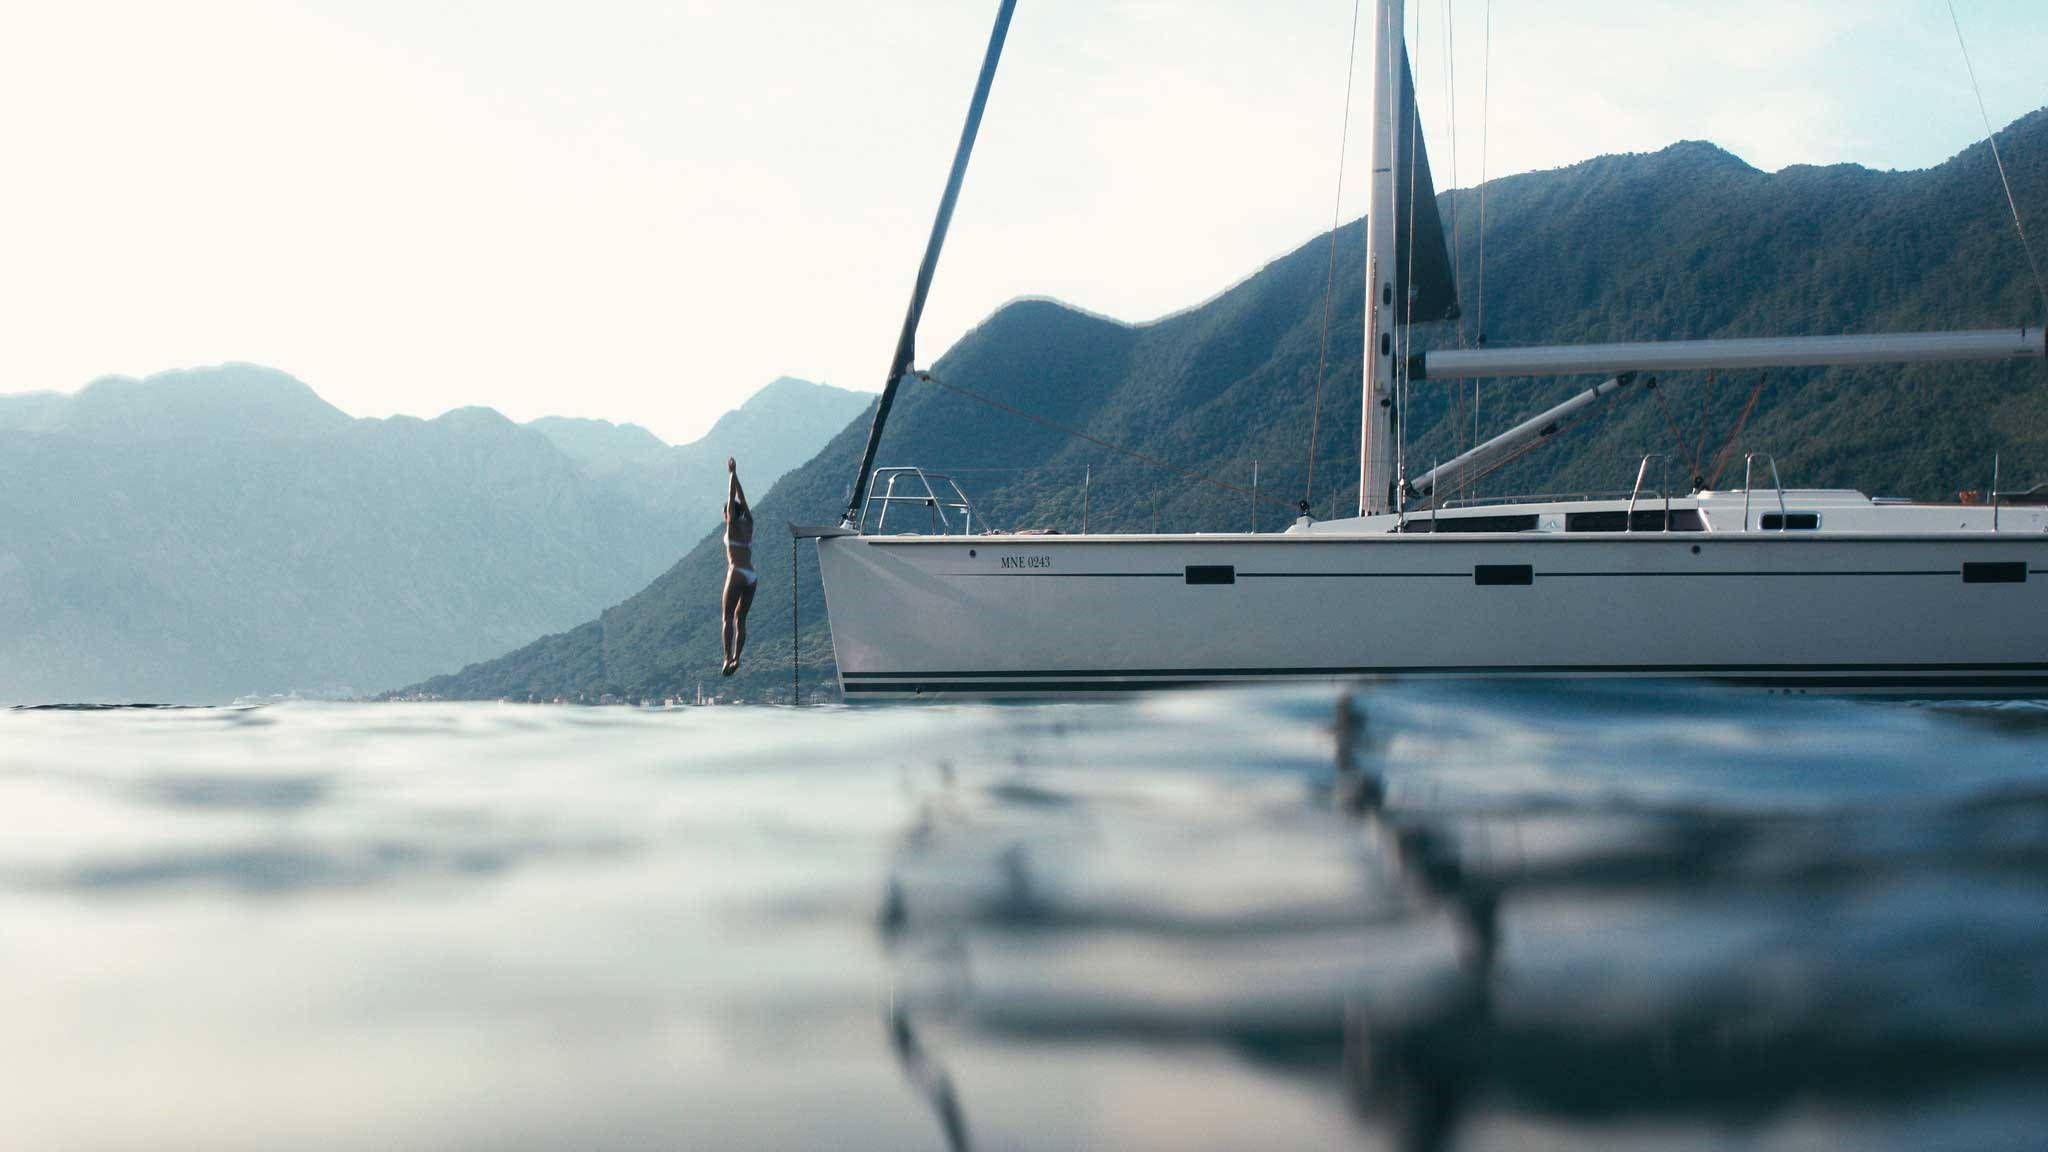 Yacht in the water